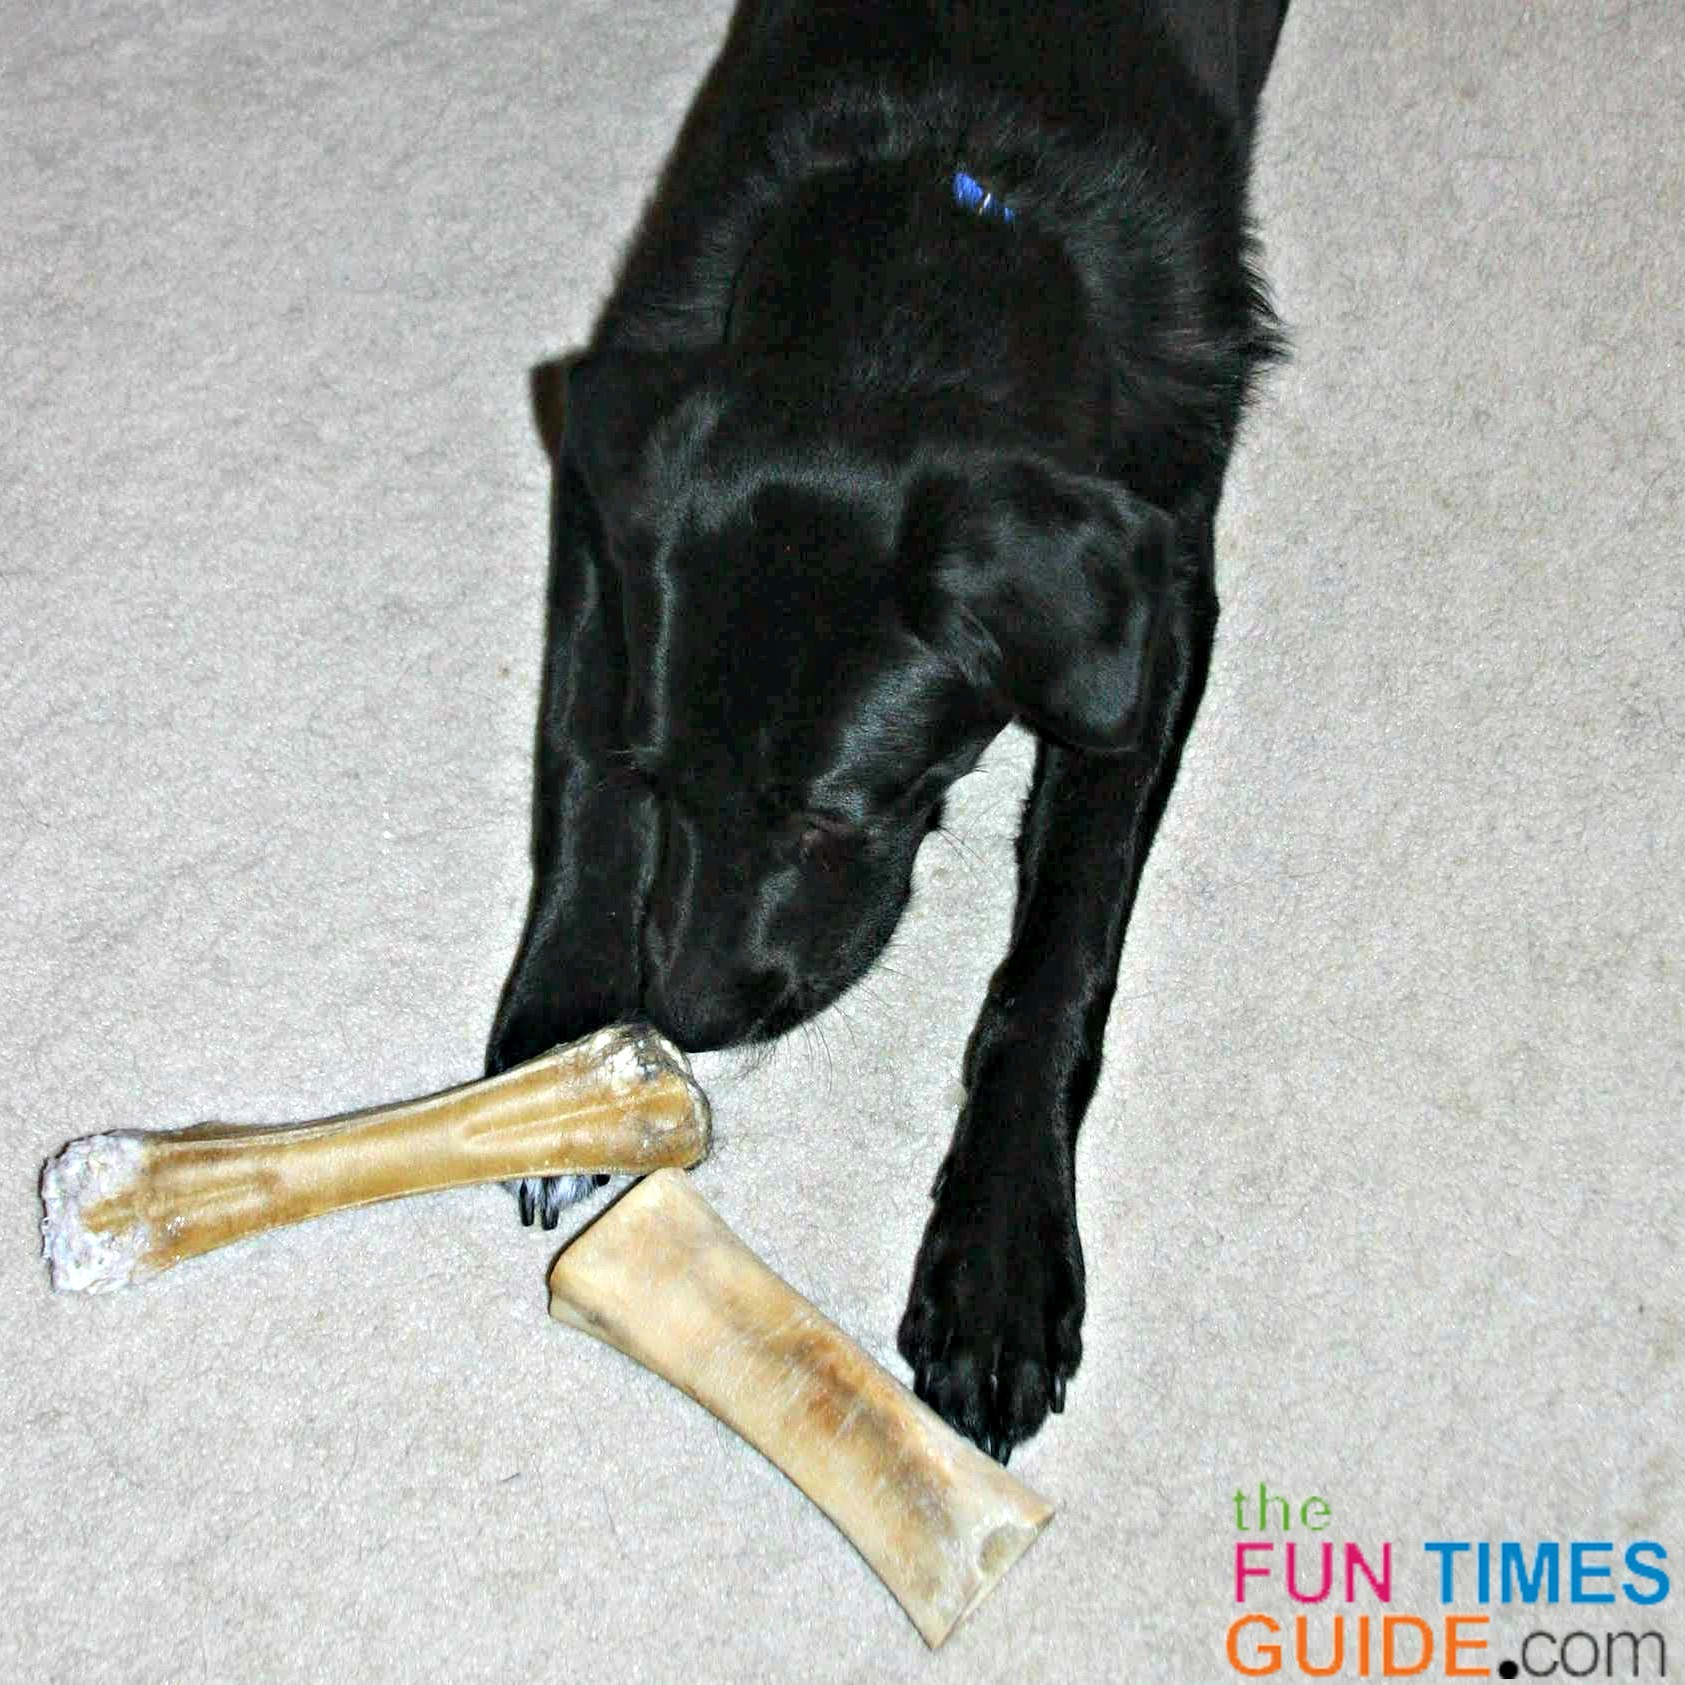 My dog trying to decide between a pressed rawhide bone and a real bone from the butcher.